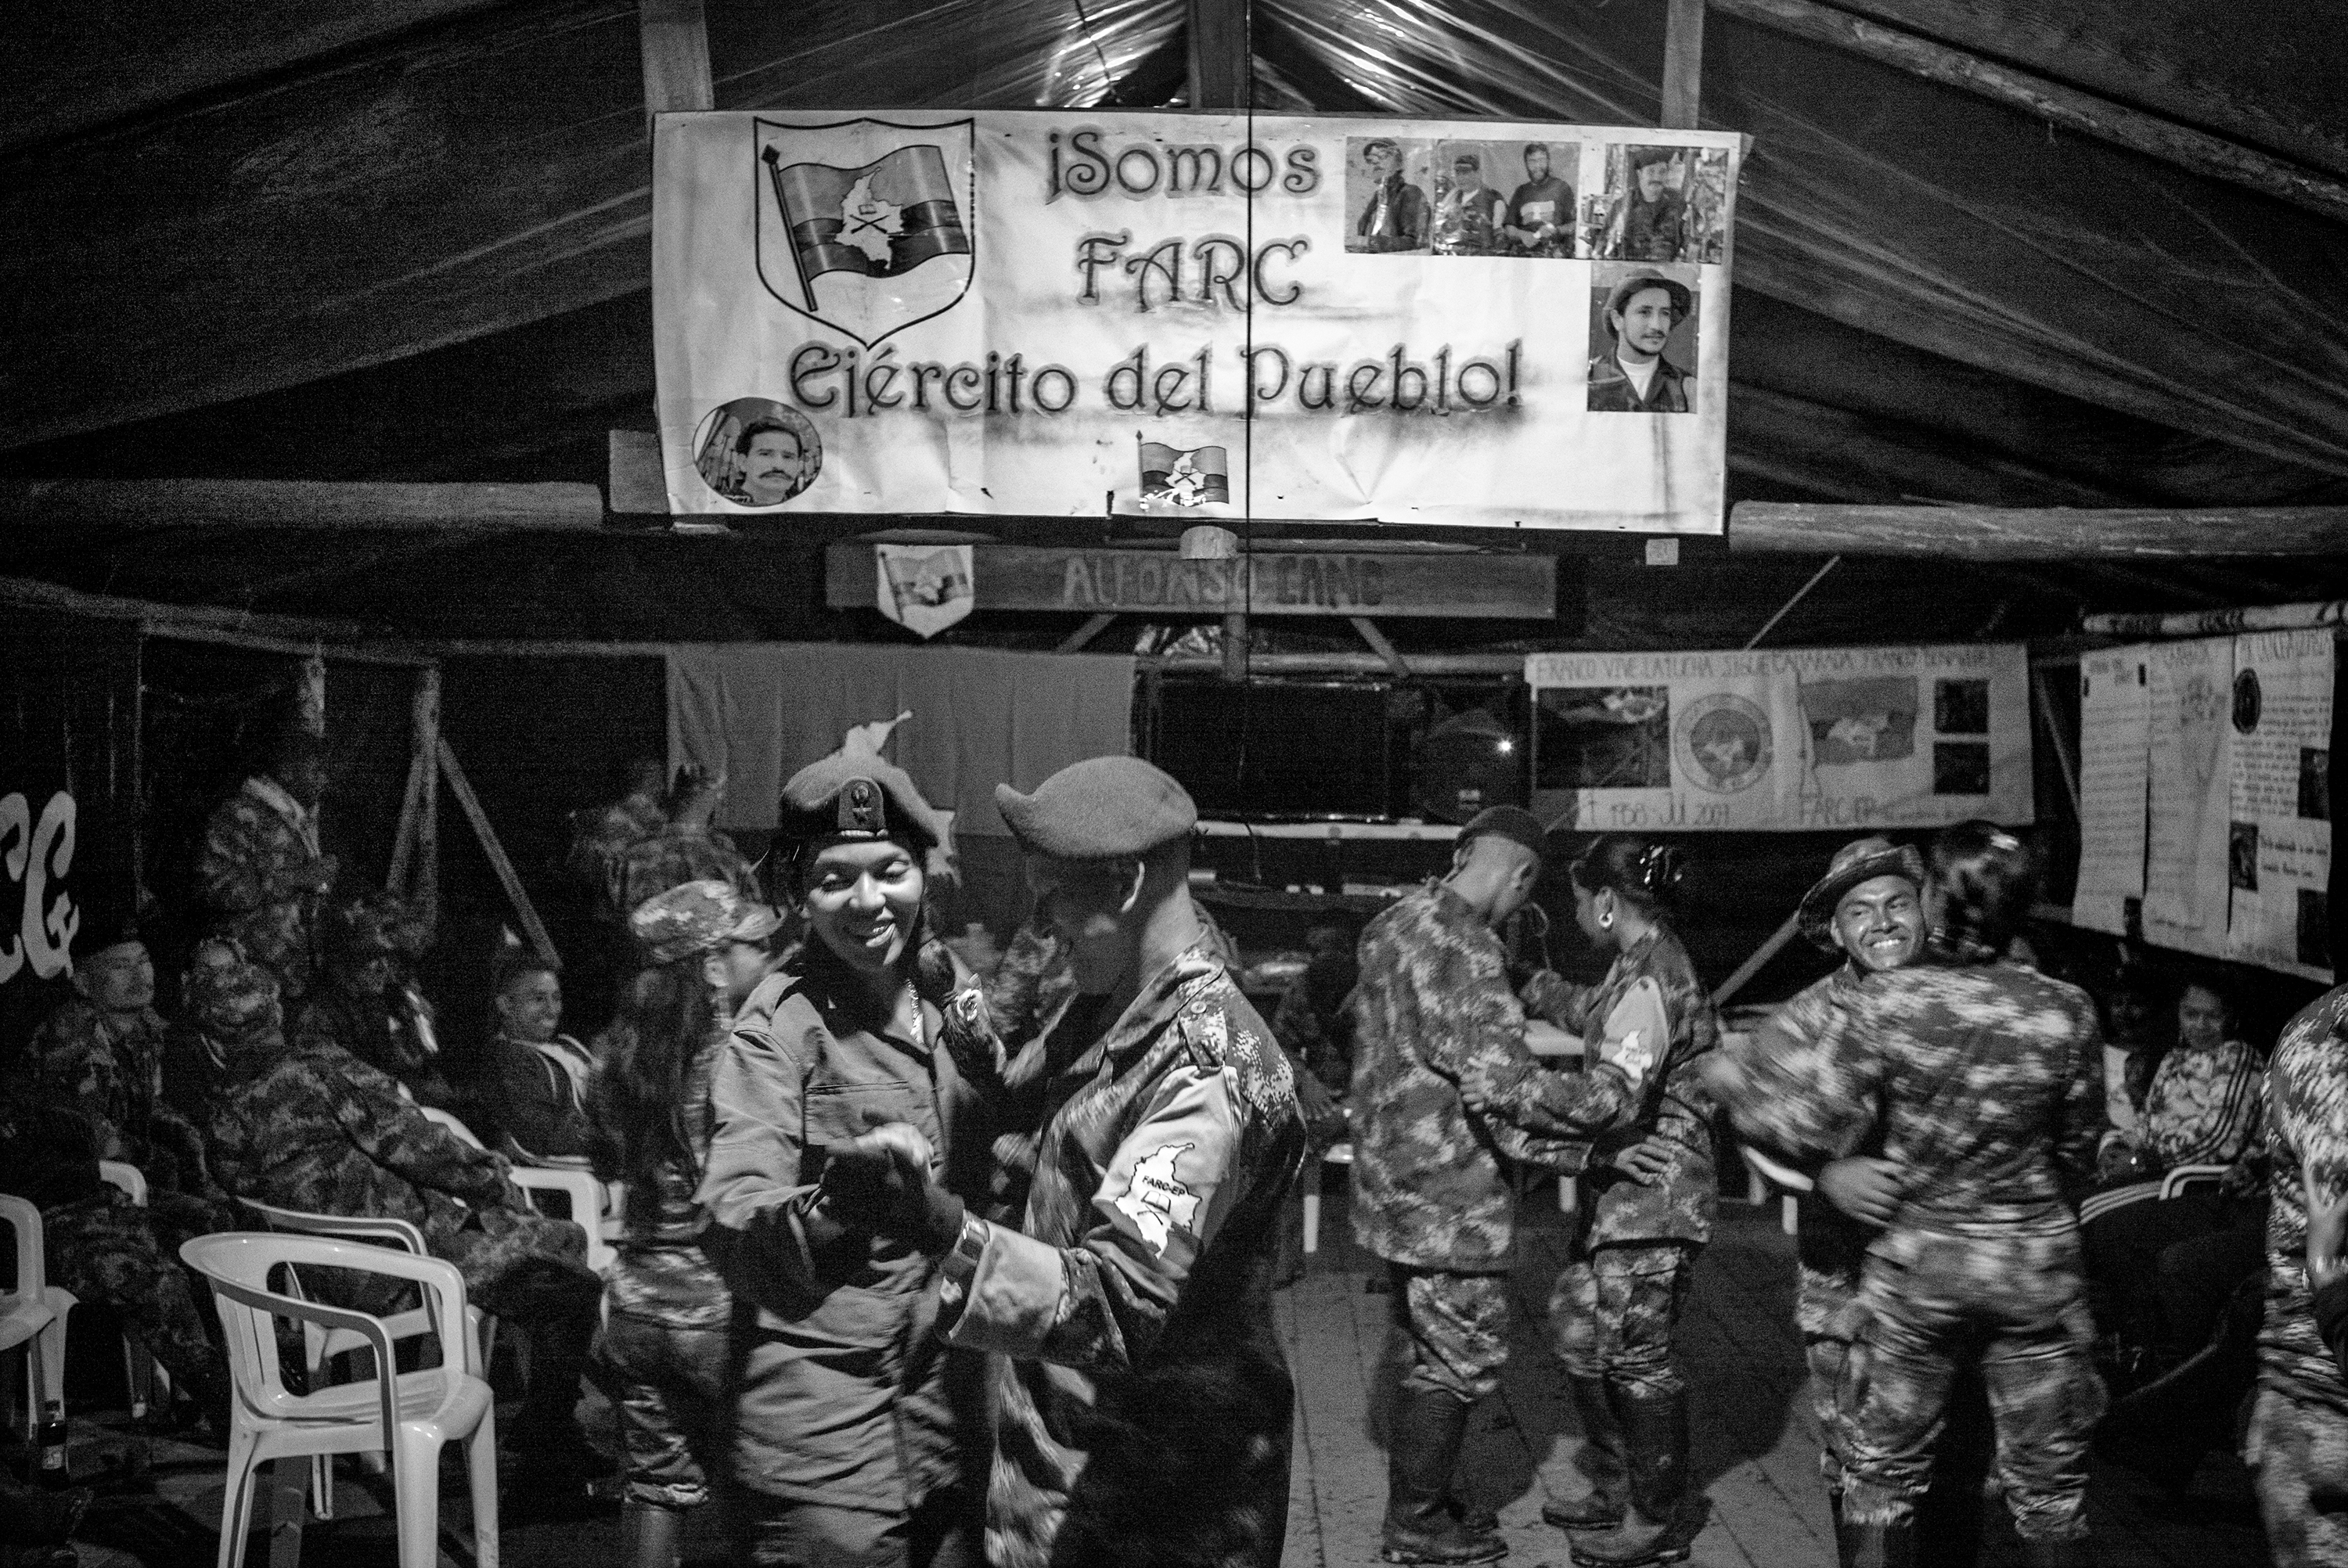 Revolutionary Armed Forces of Colombia (FARC) guerrilla members dance during a party at a camp. For fity-two years, FARC has been an armed movement in Colombia. With the peace agreements reached in Havana on August 24, 2016, it will begin to move towards becoming a political movement, Cauca, Colombia, July 2016.